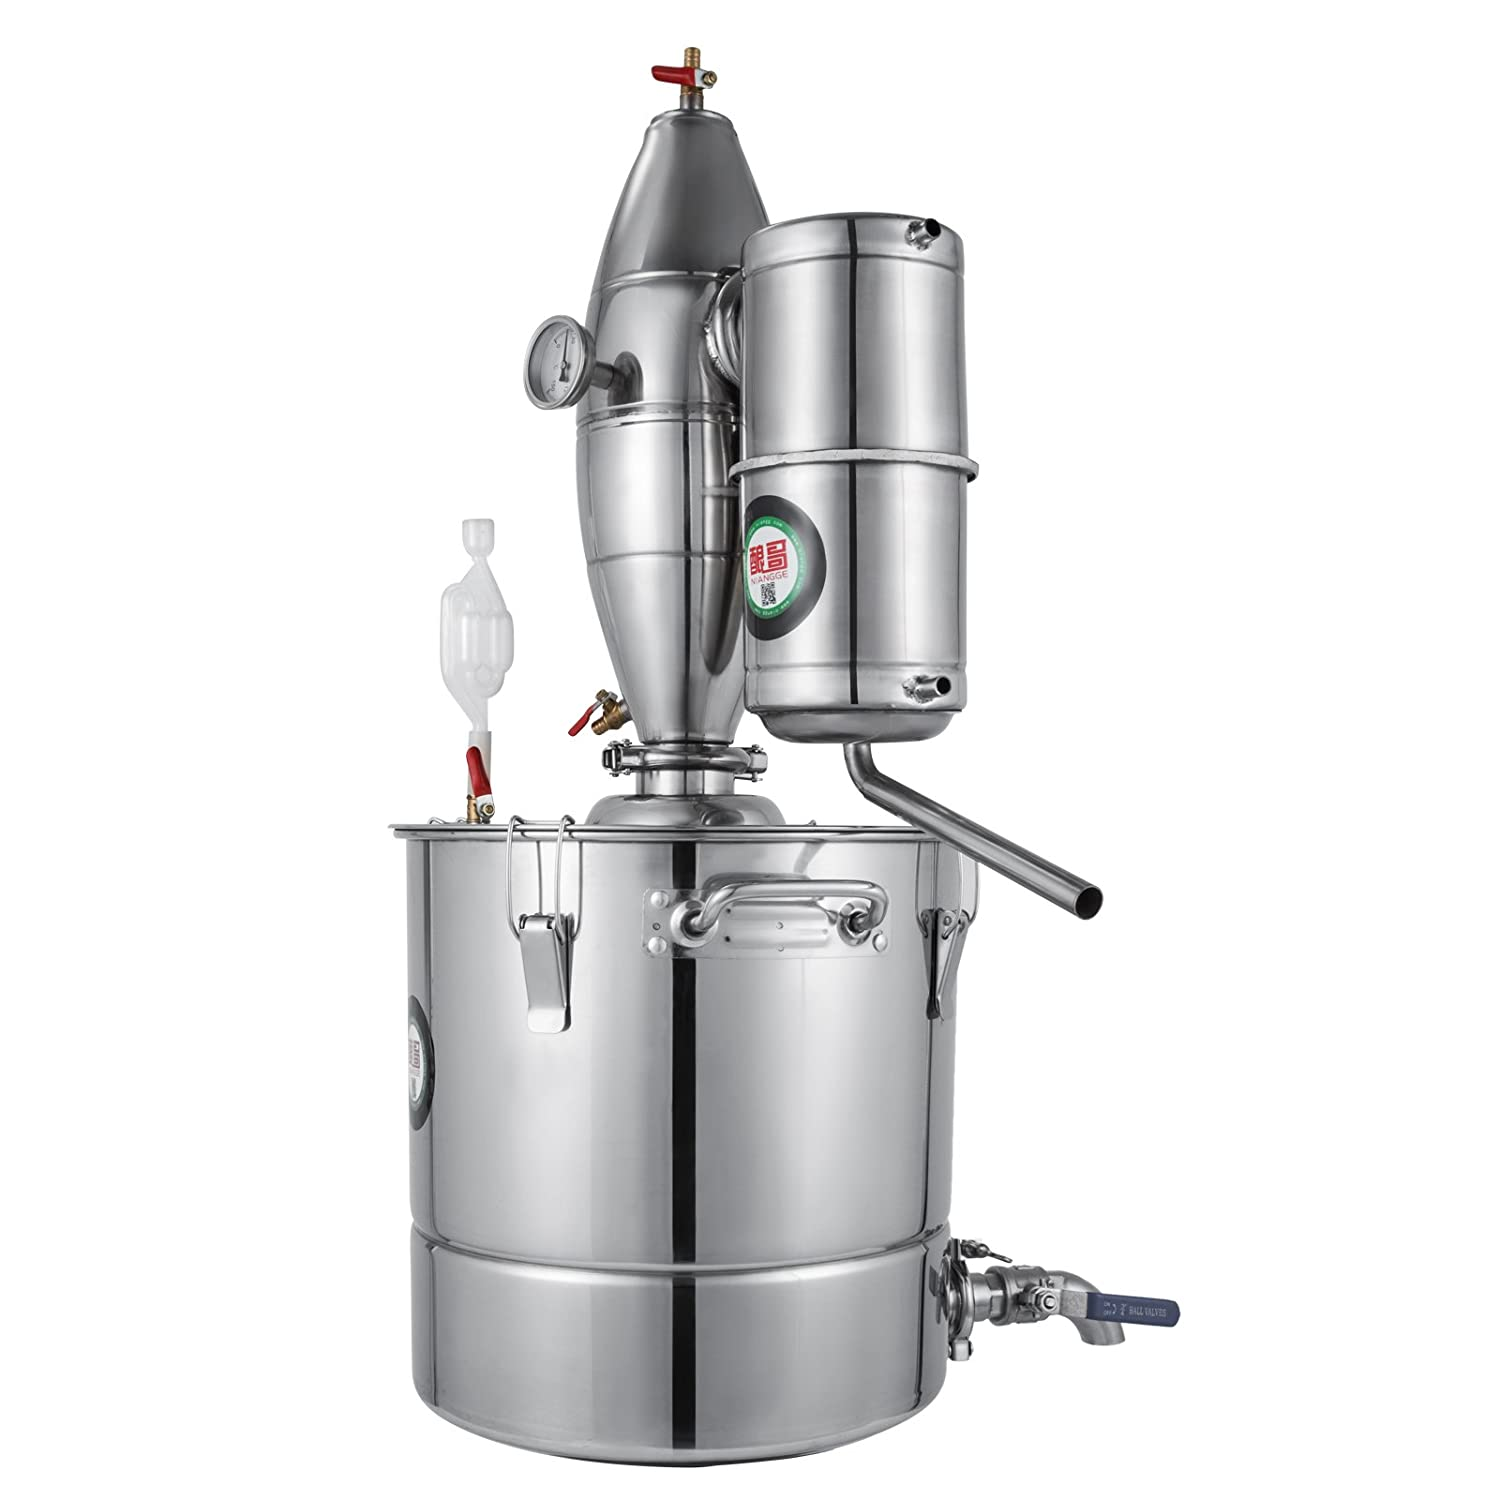 VEVOR 30L 7.9Gal Water Alcohol Distiller 304 Stainless Steel Alcohol Distiller